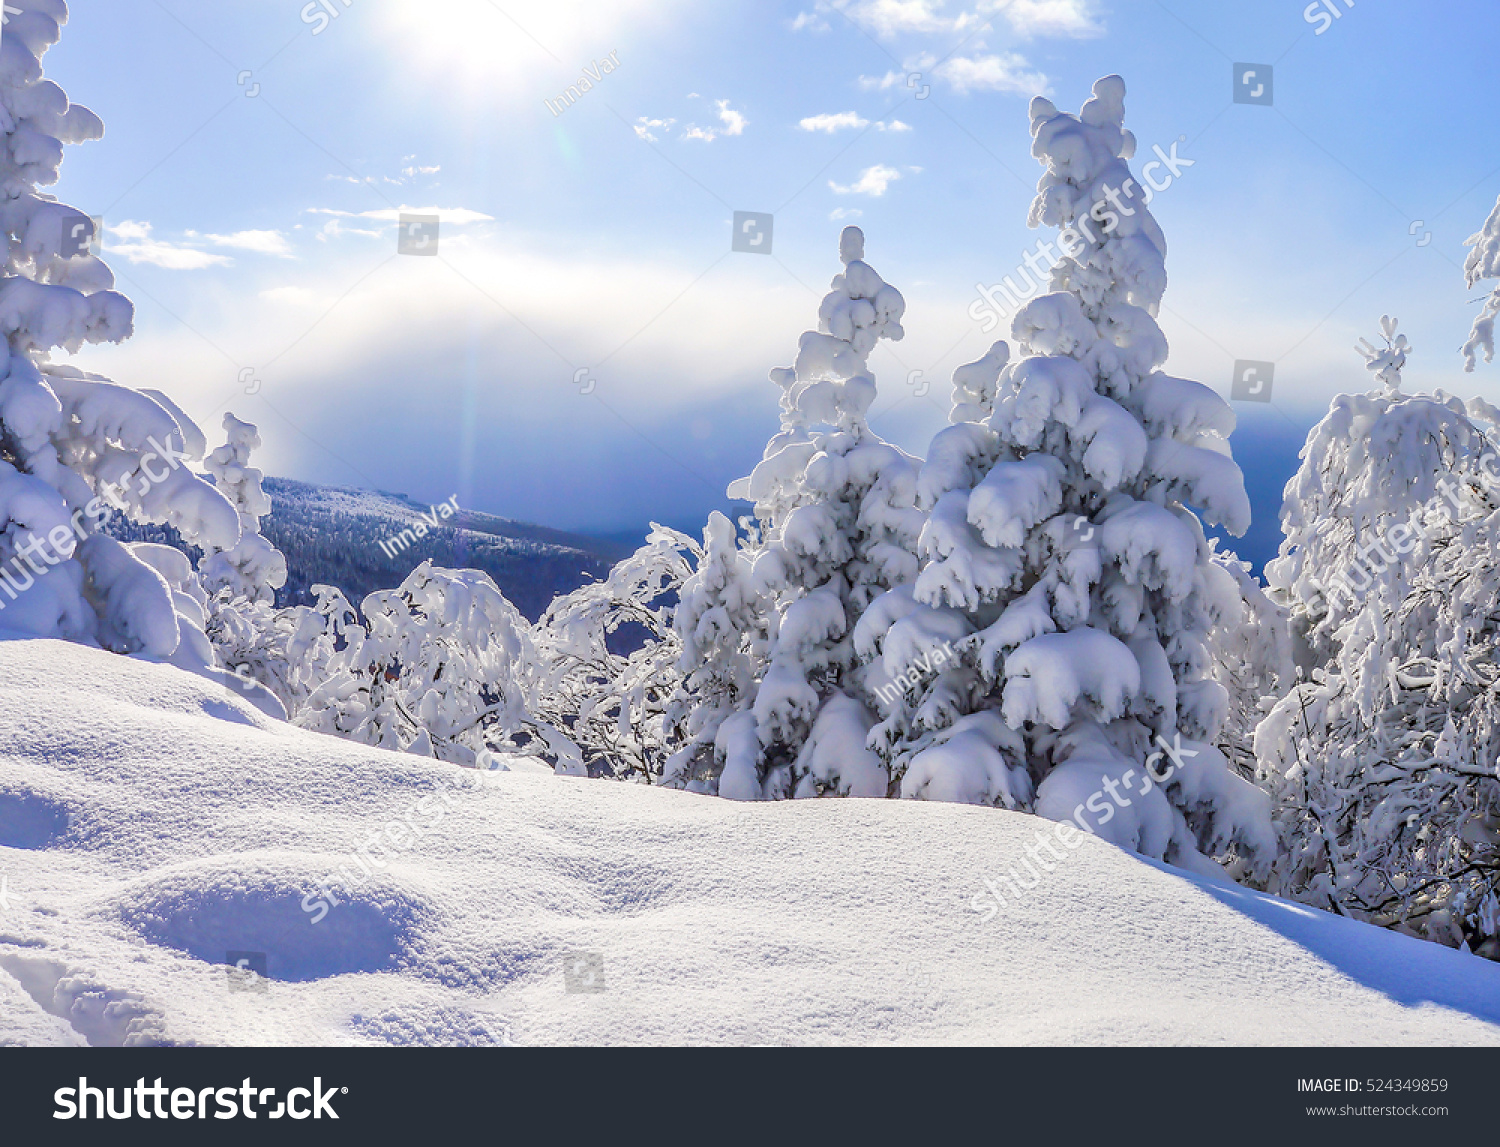 Winter nature landscape